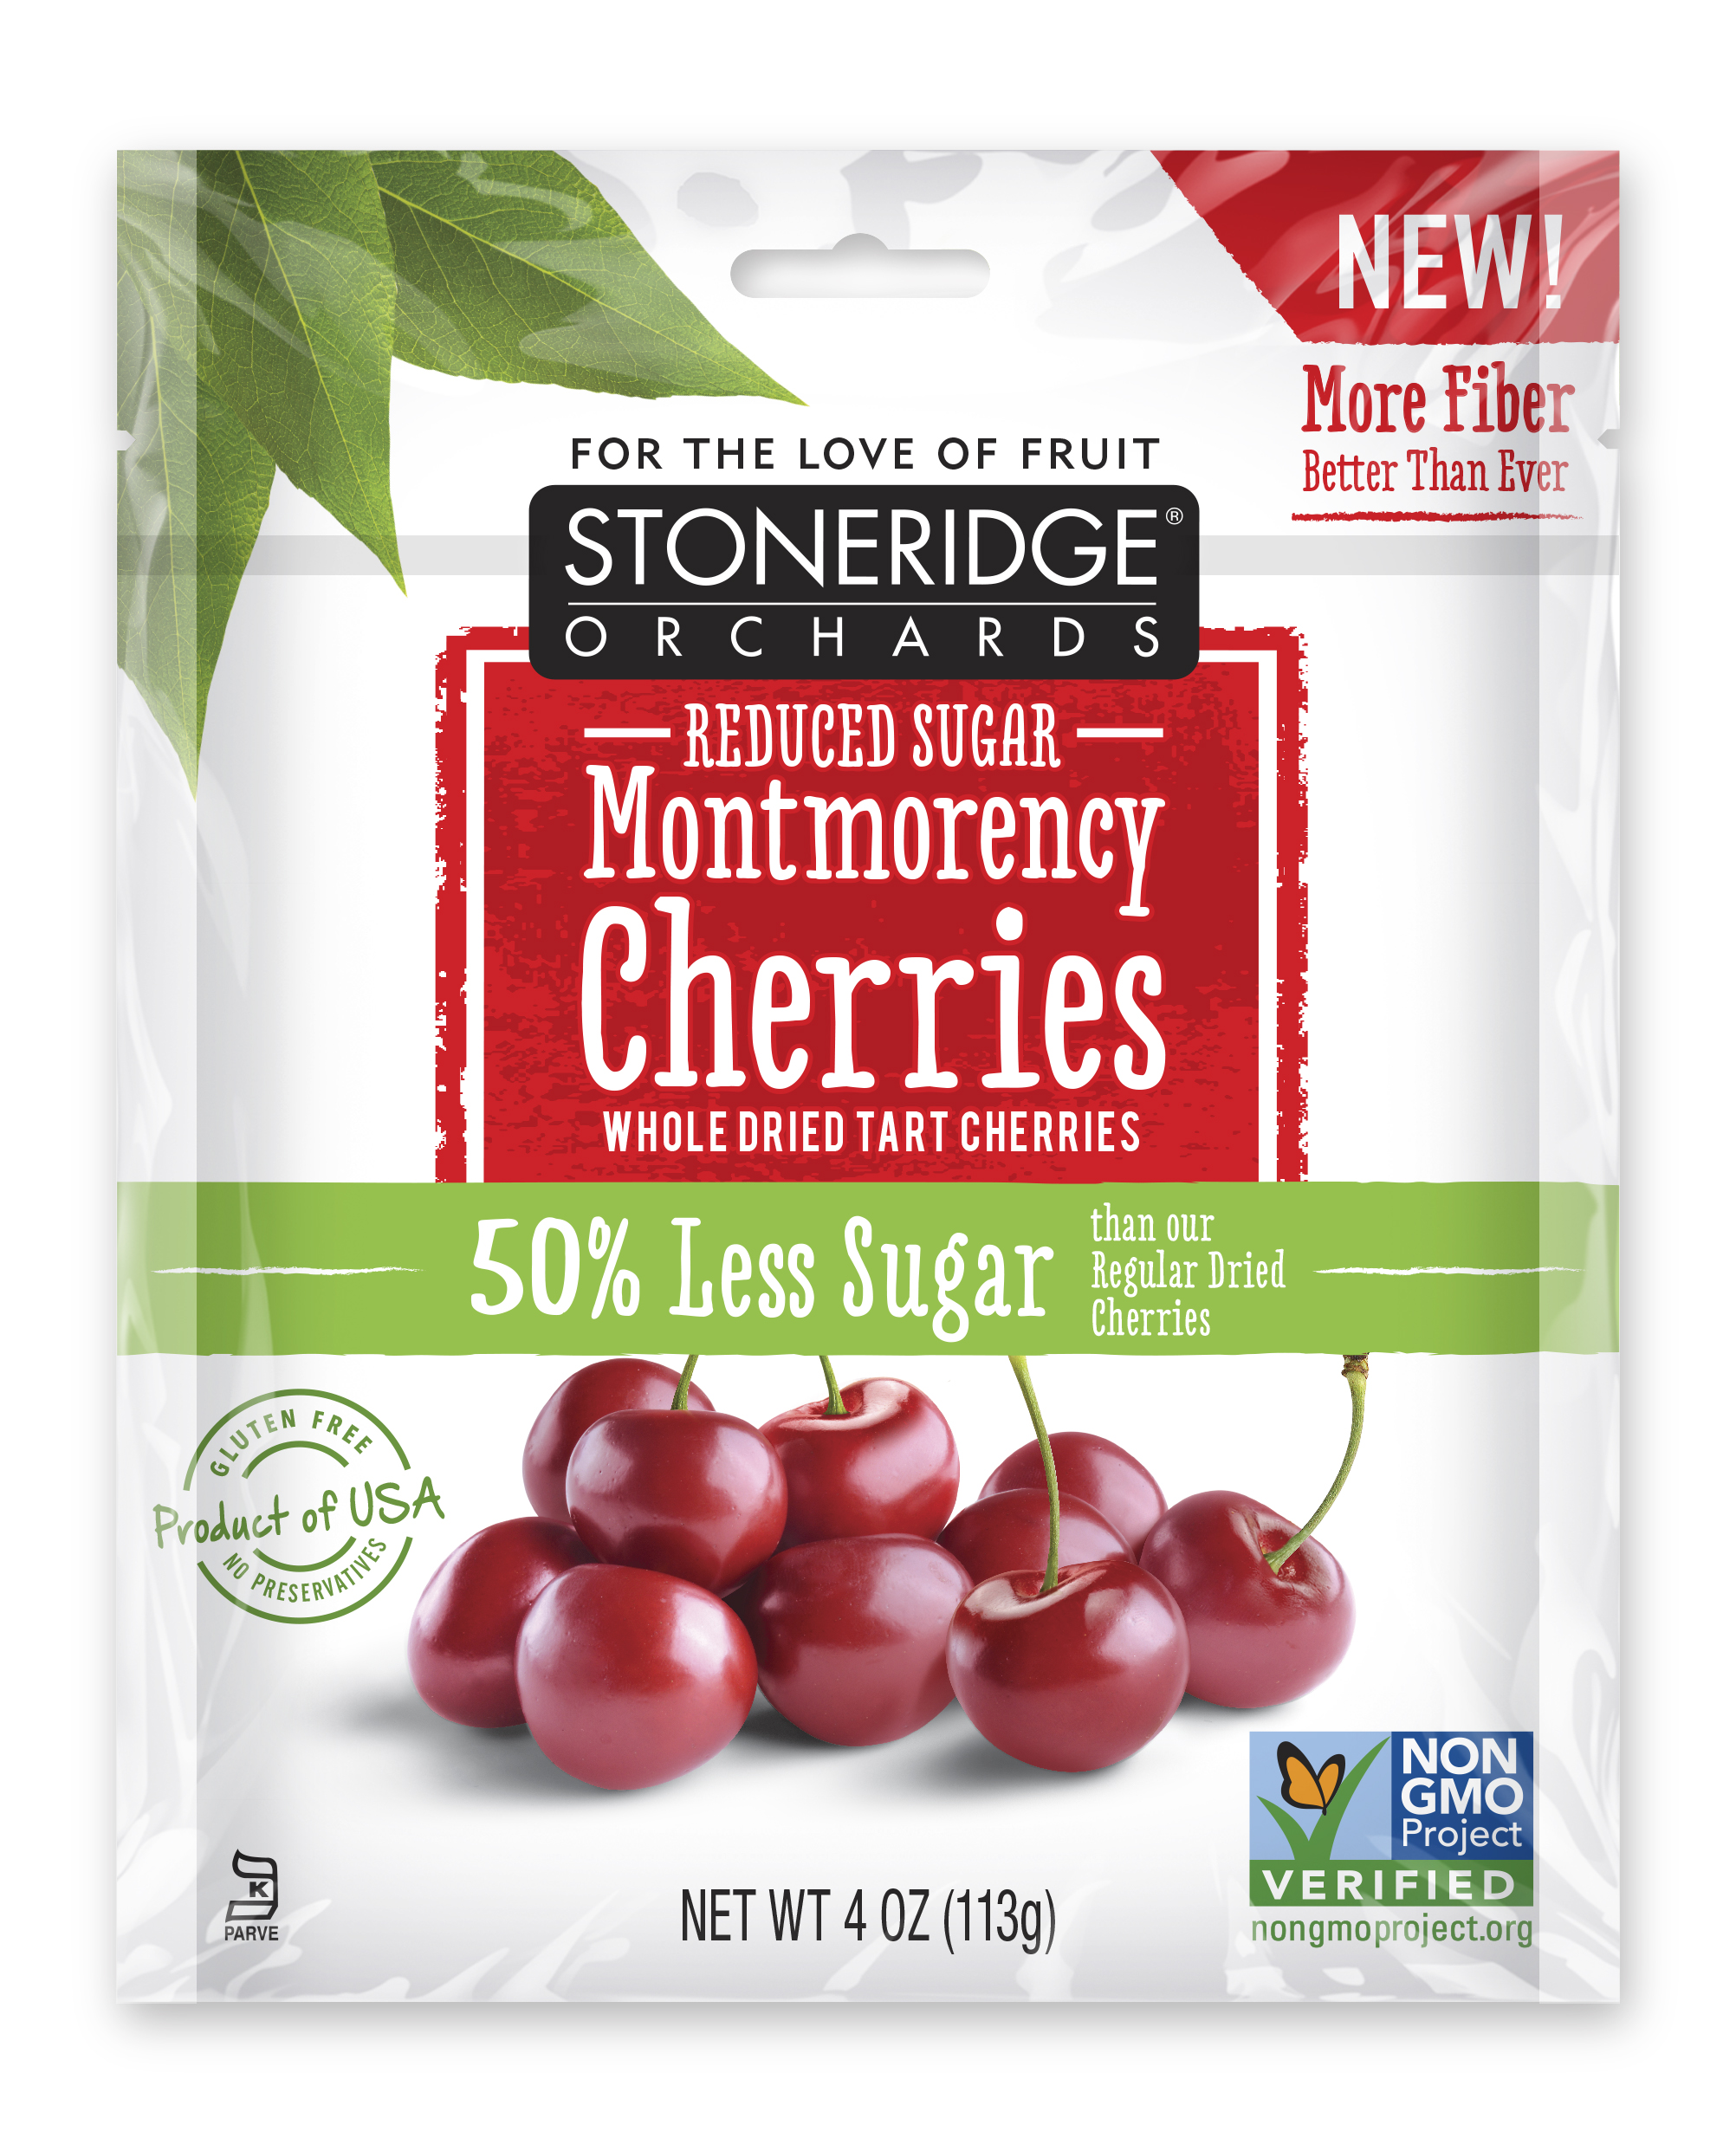 Stoneridge Orchards: Reduced Sugar Montmorency Cherries